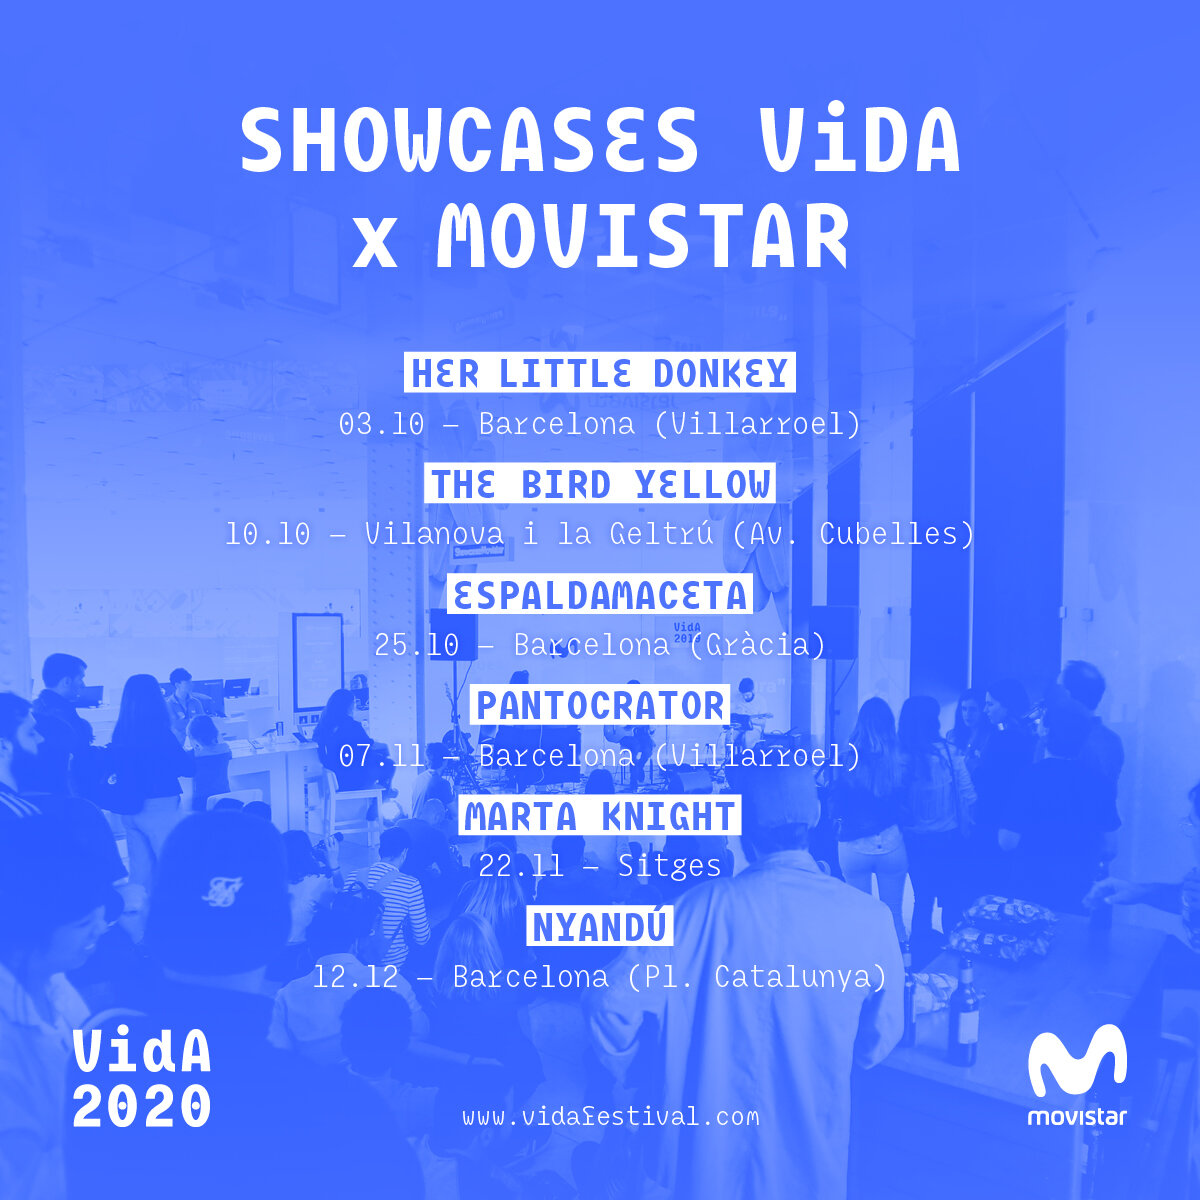 Showcases_Movistar_16092019_V3.jpg